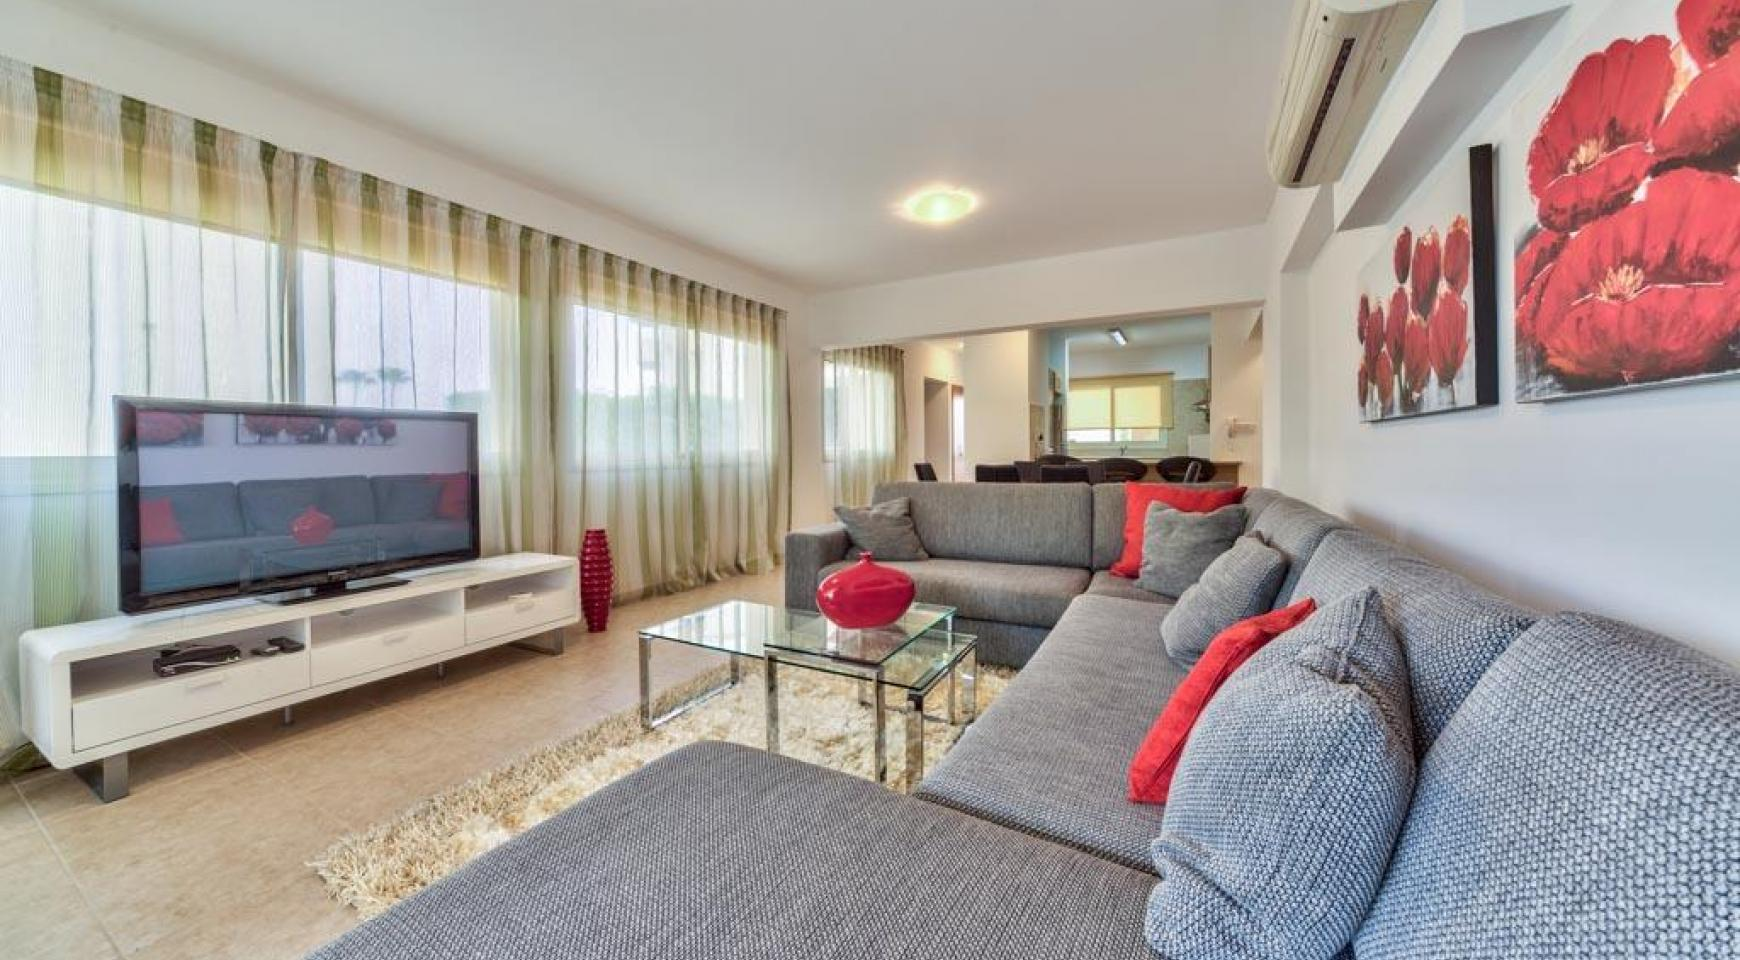 3 Bedroom Apartment in the Centre of the Tourist Area - 1